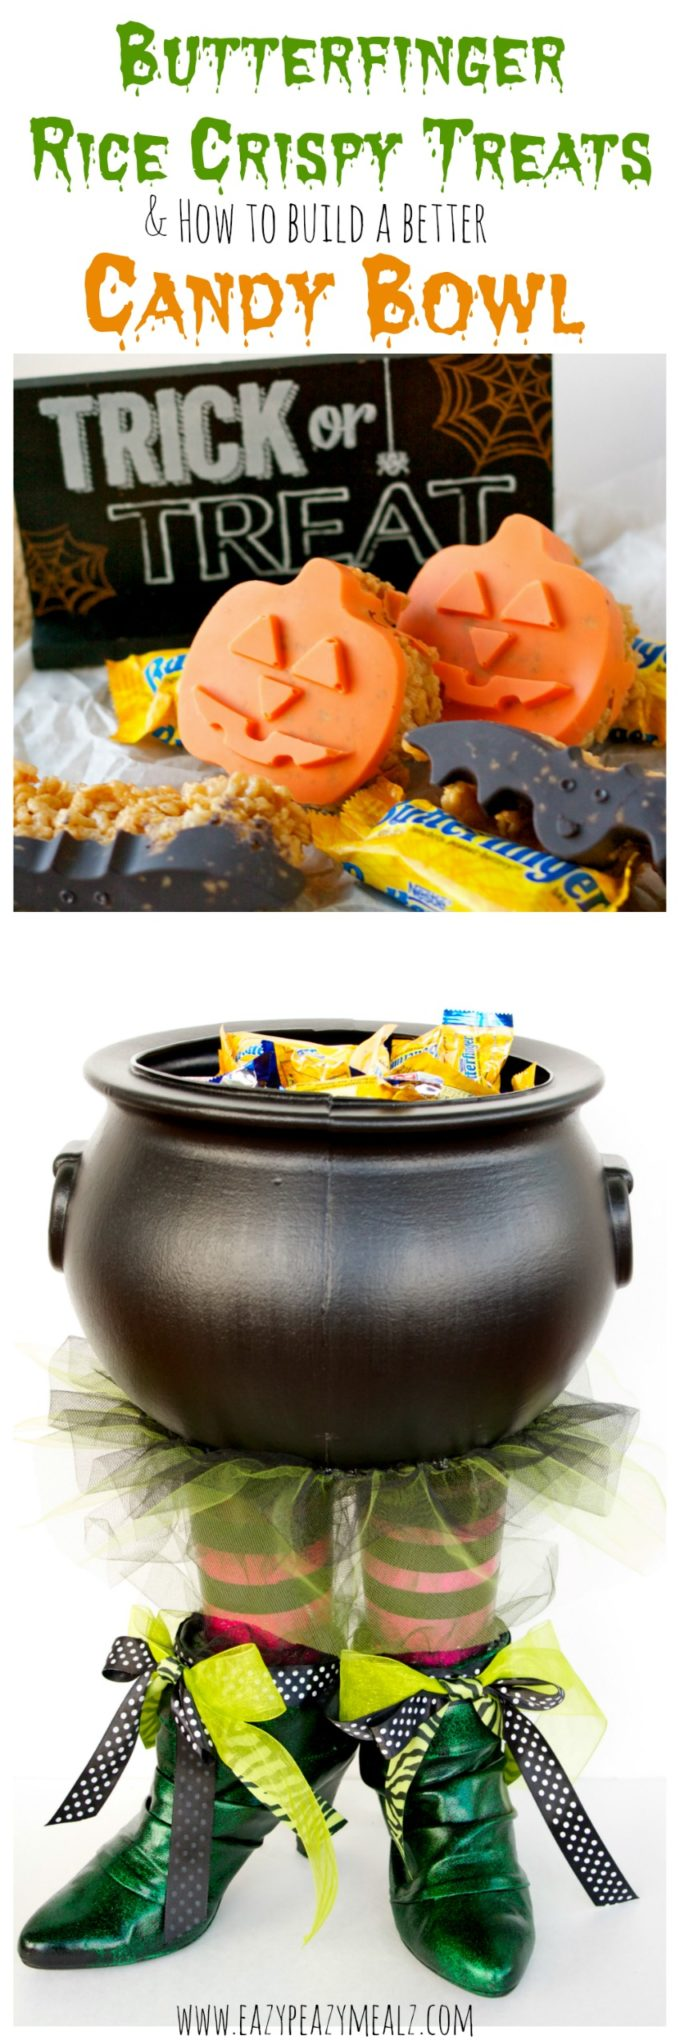 Butterfinger Halloween Rice Crispy Treats & How to Build A ...